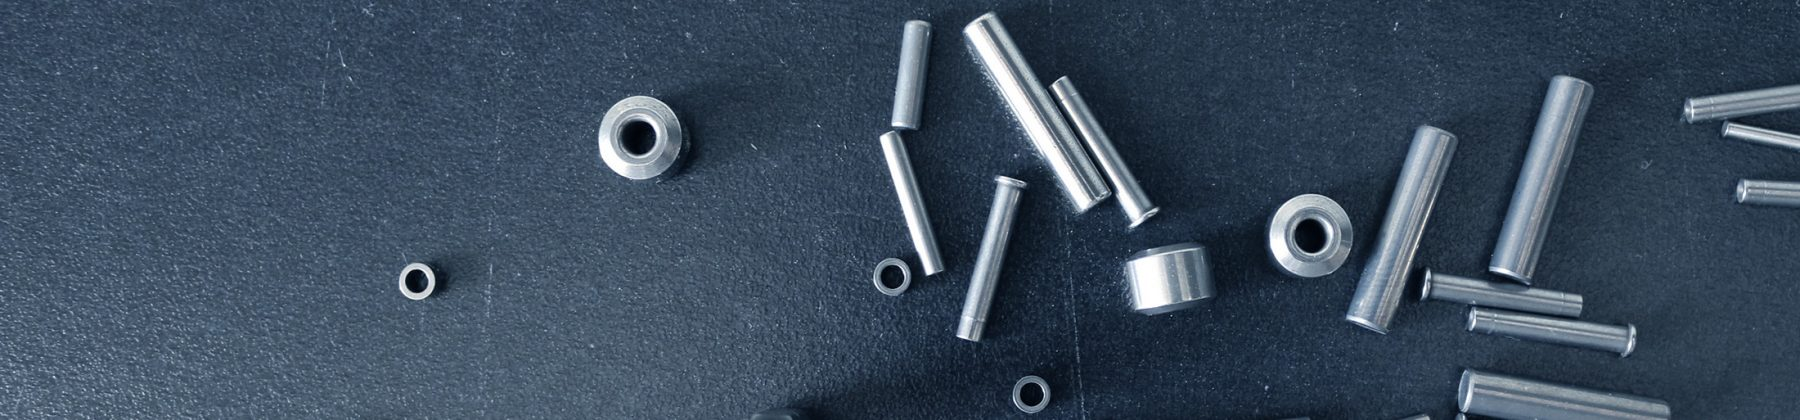 coating_components_quality_iwis_corrosion_protection_robust_wear_resistant_132